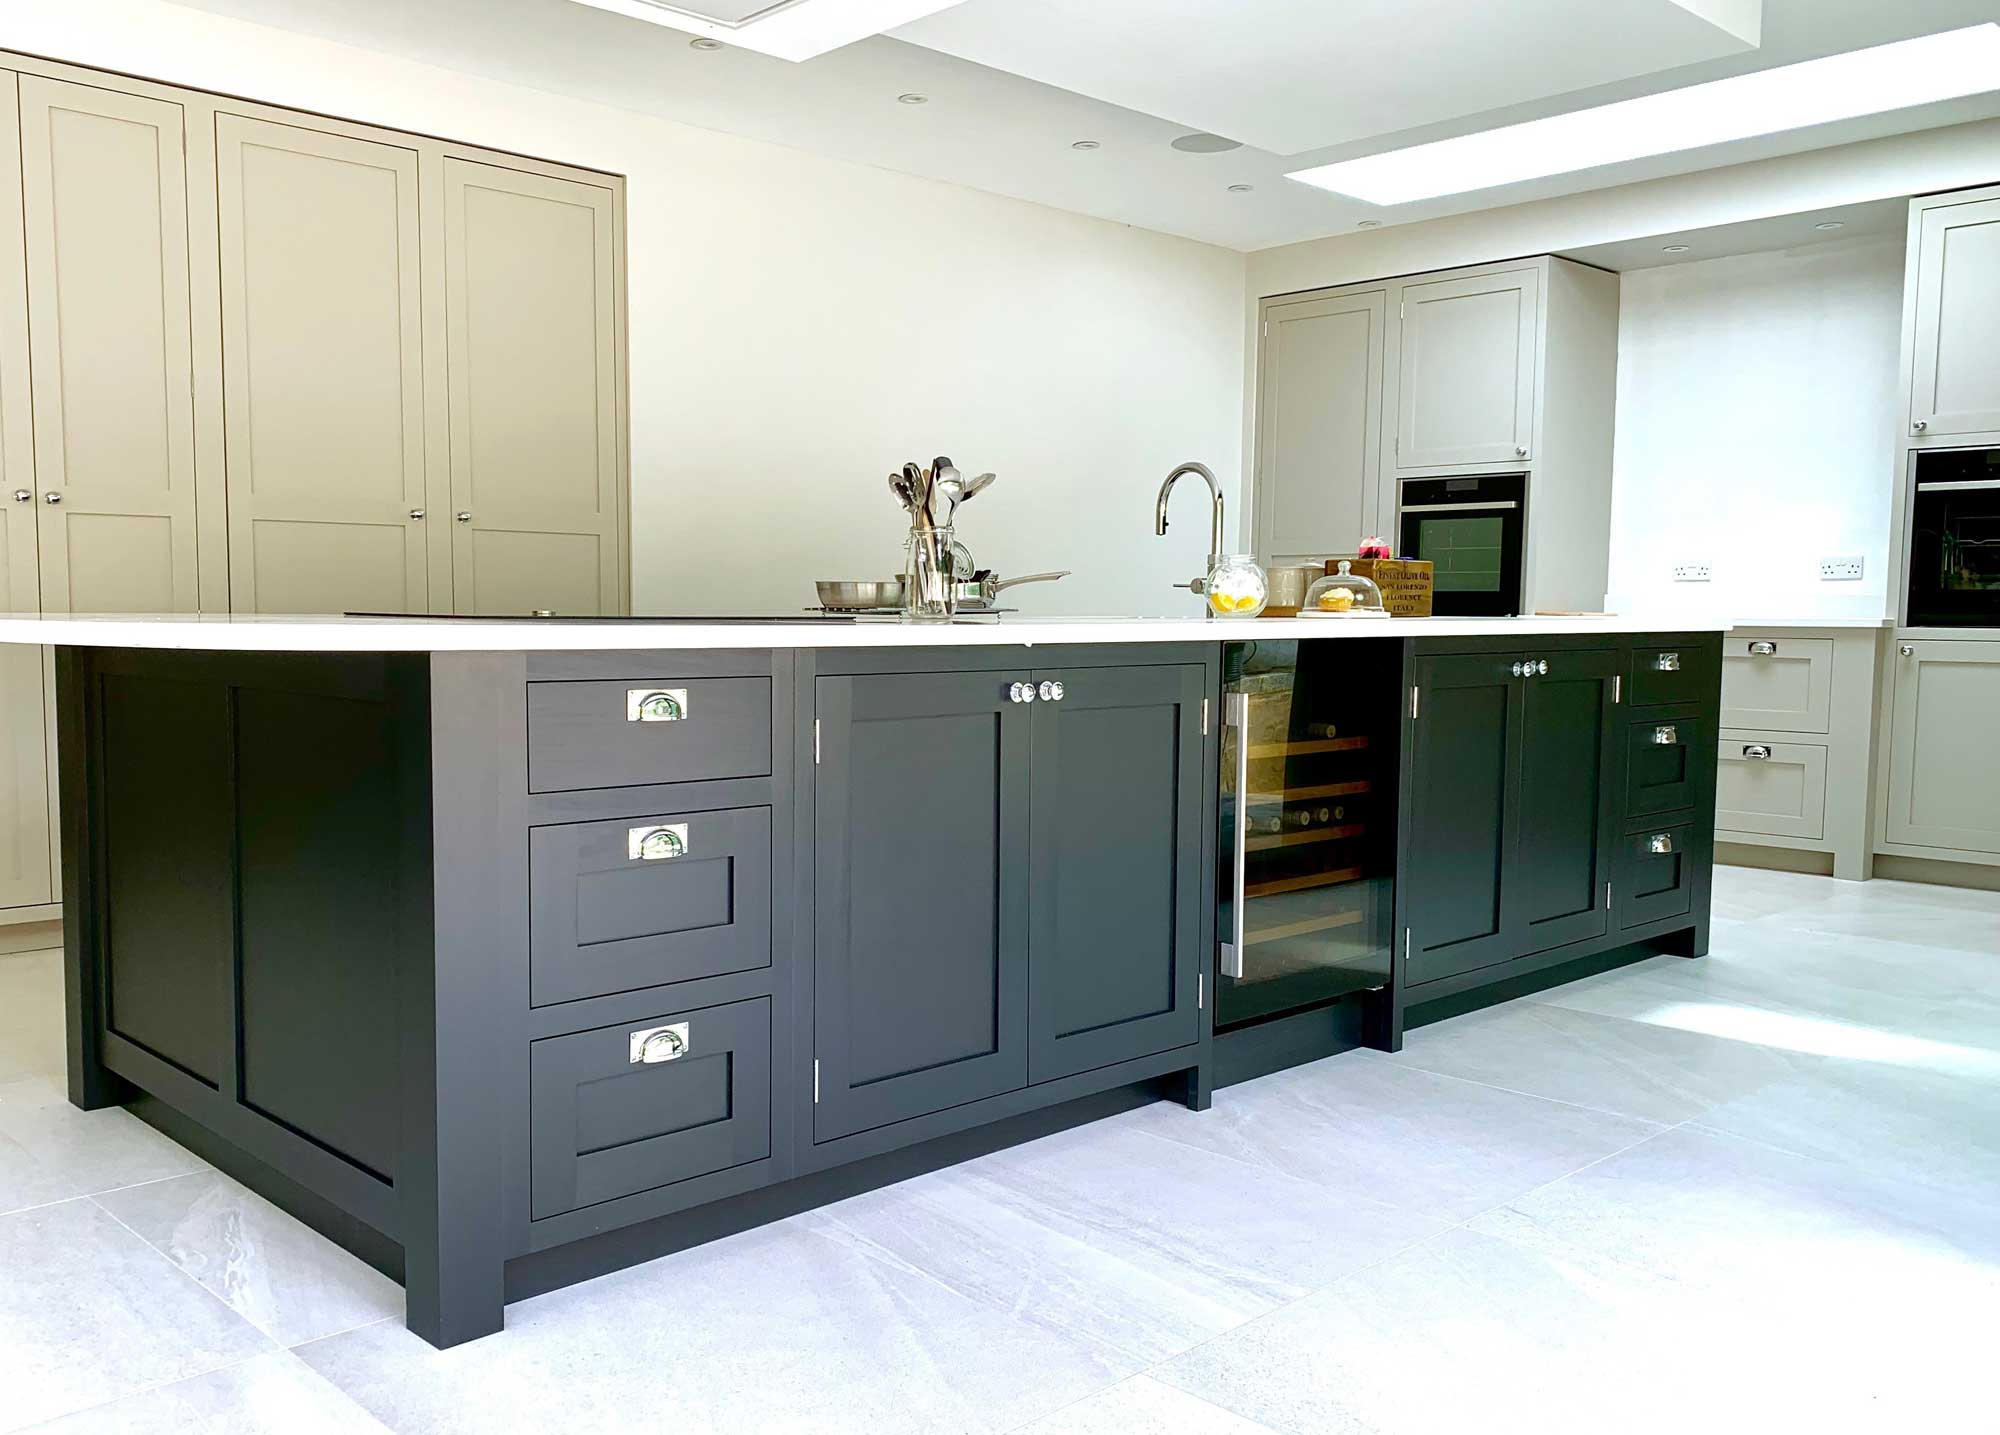 Finished Kitchens Archives - GVS Kitchen Design and Planning